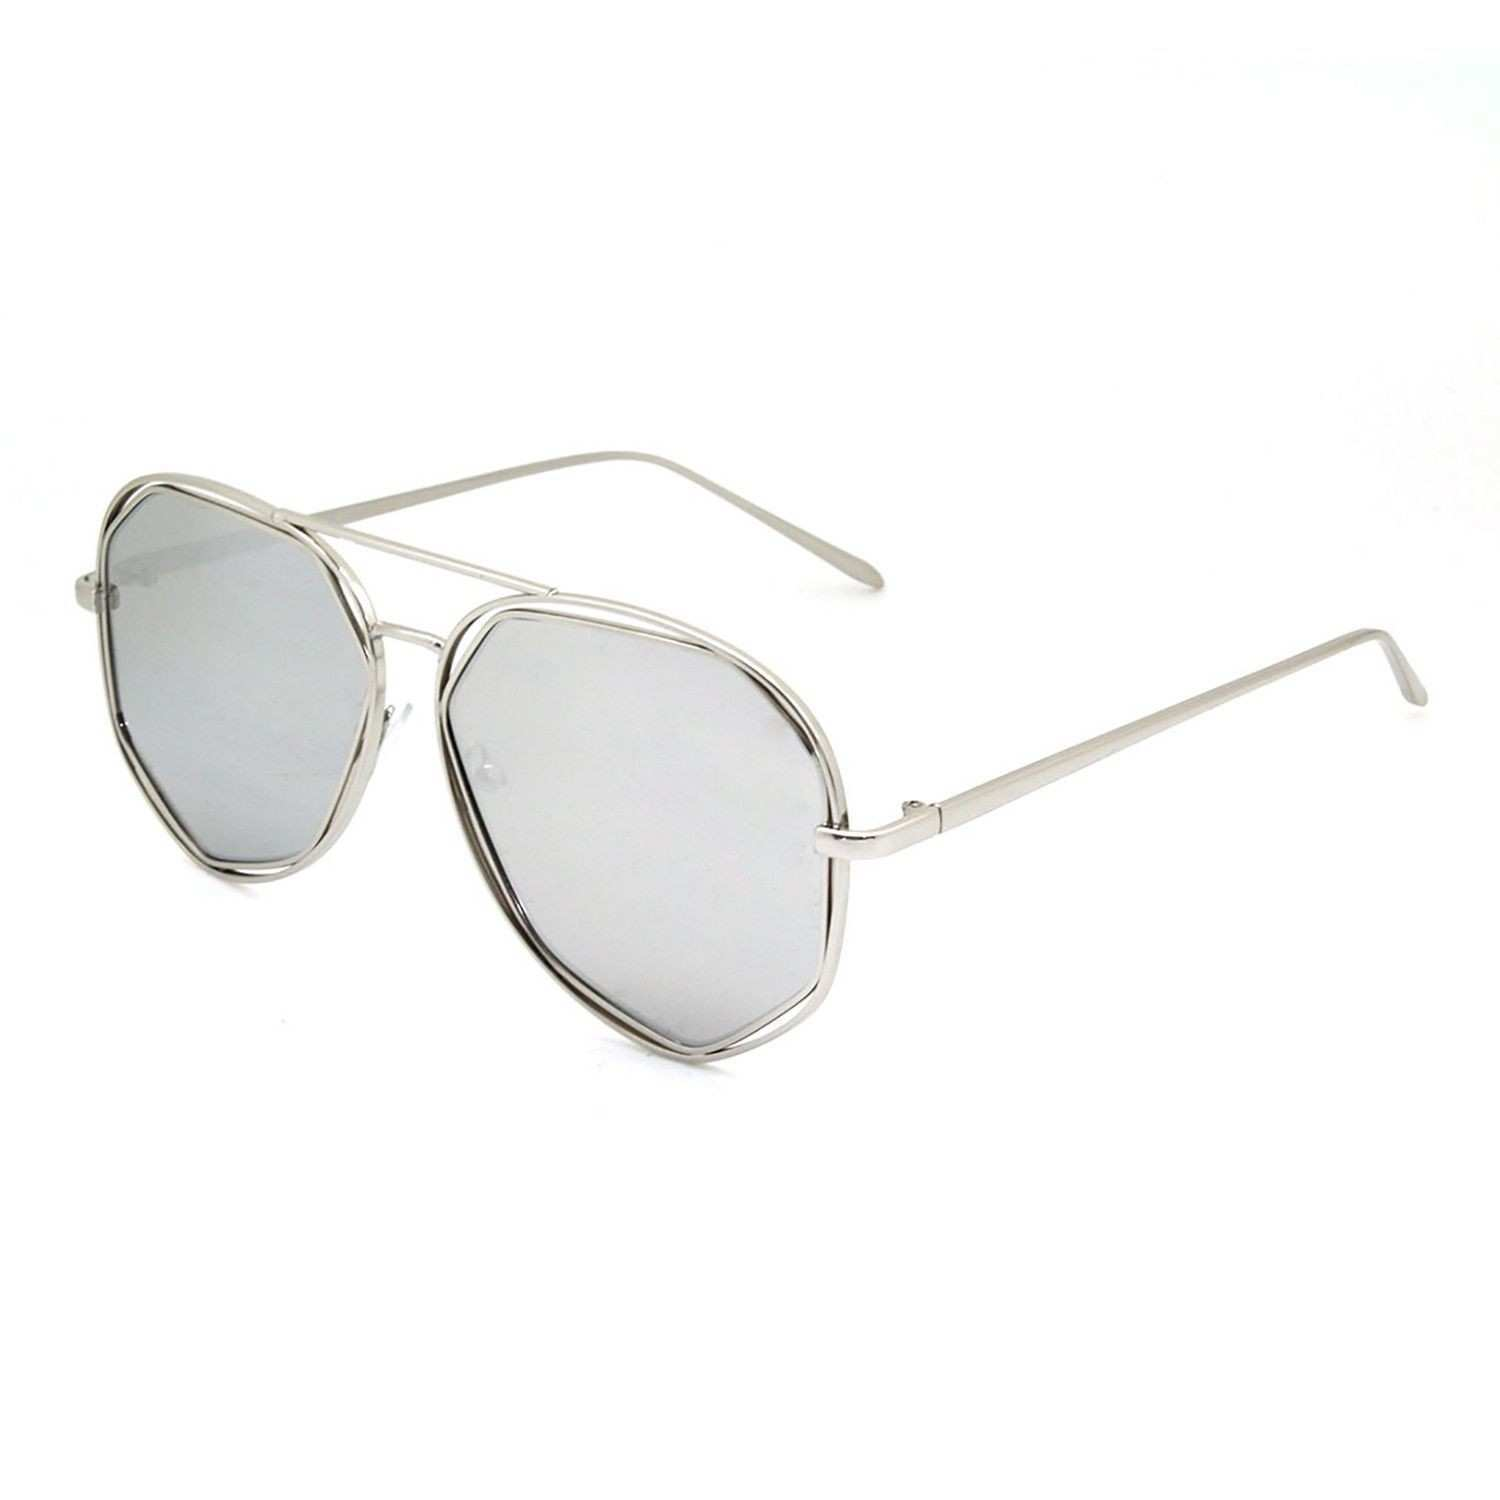 Mechaly Oval Style Sunglasses with Silver Frame & Silver Mirror Lens